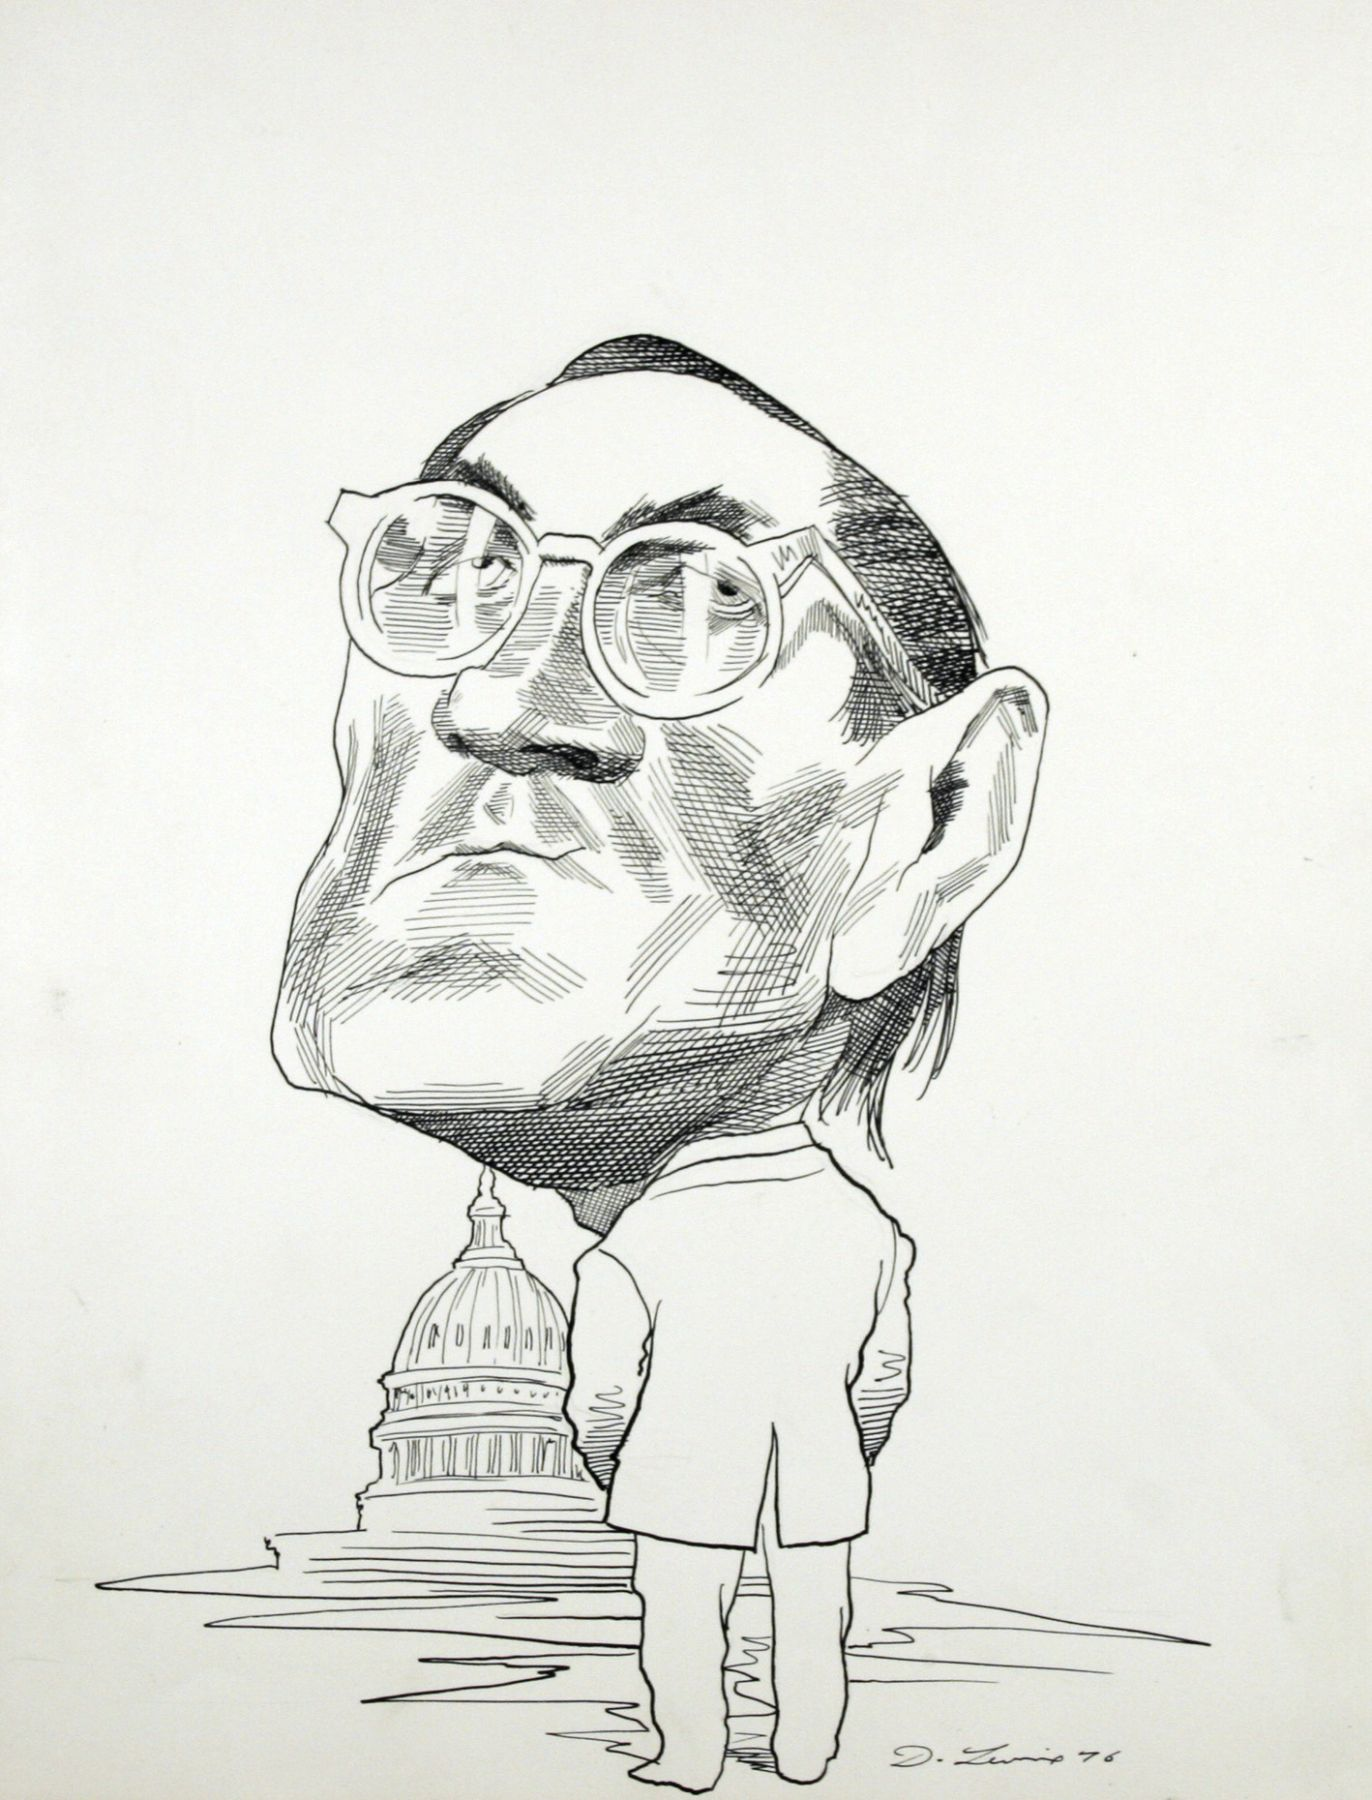 David Levine, William Colby, 1976, ink on paper, 13 3/4 x 11 inches